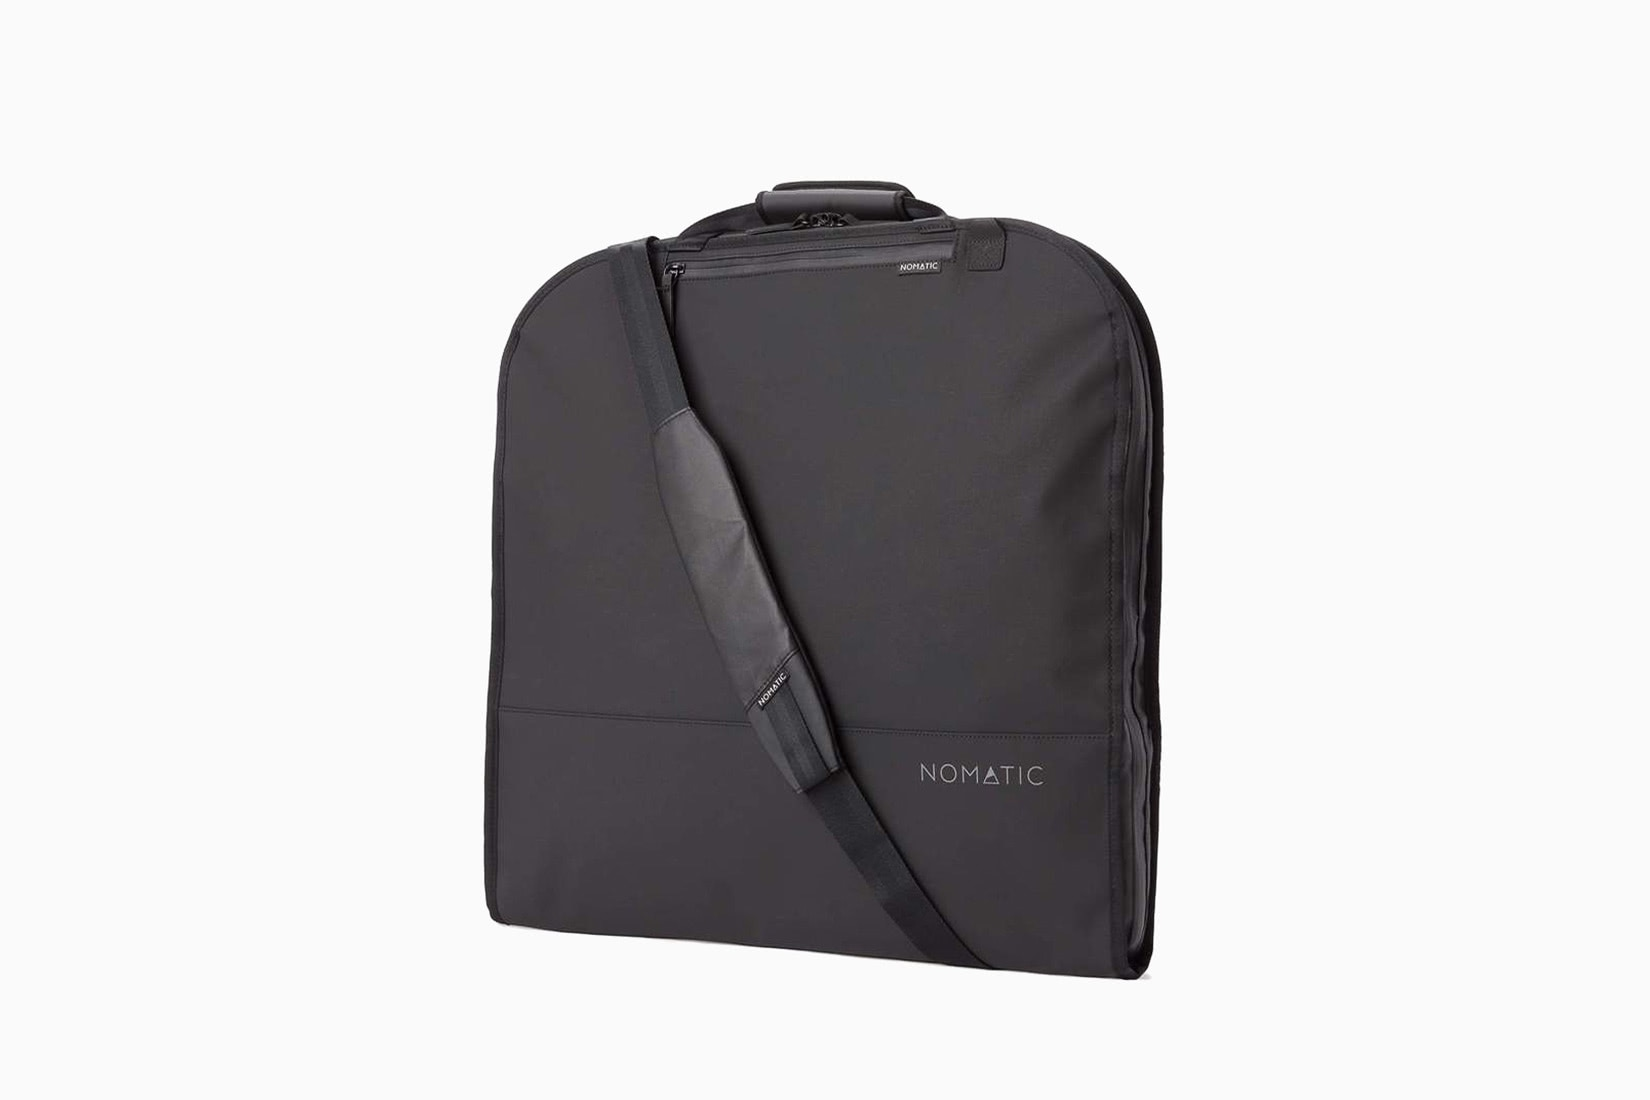 best garment bags nomatic review - Luxe Digital